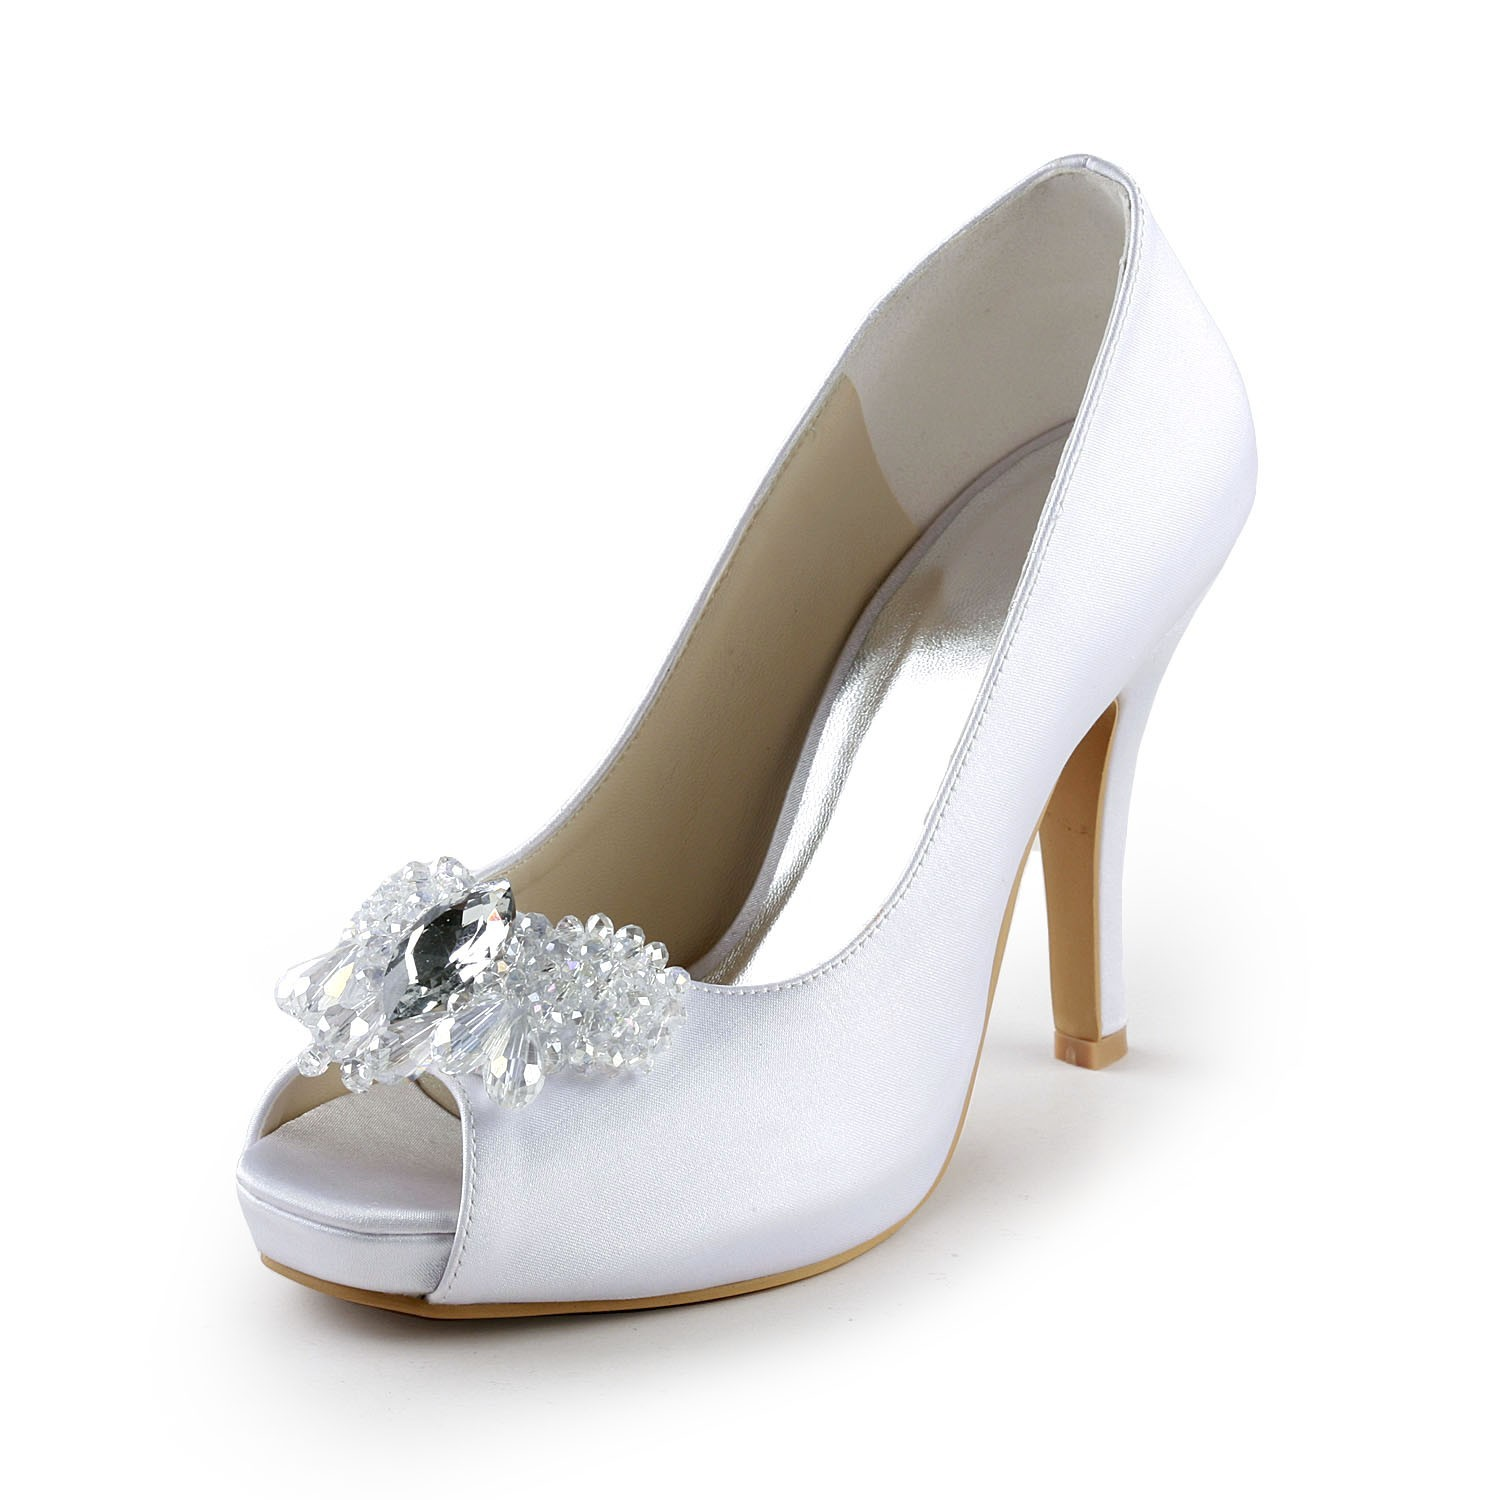 4b55791b9ae The Most Trendy Women's Satin Upper Stiletto Heel Peep Toe Pumps with  Rhinestone White Wedding Shoes